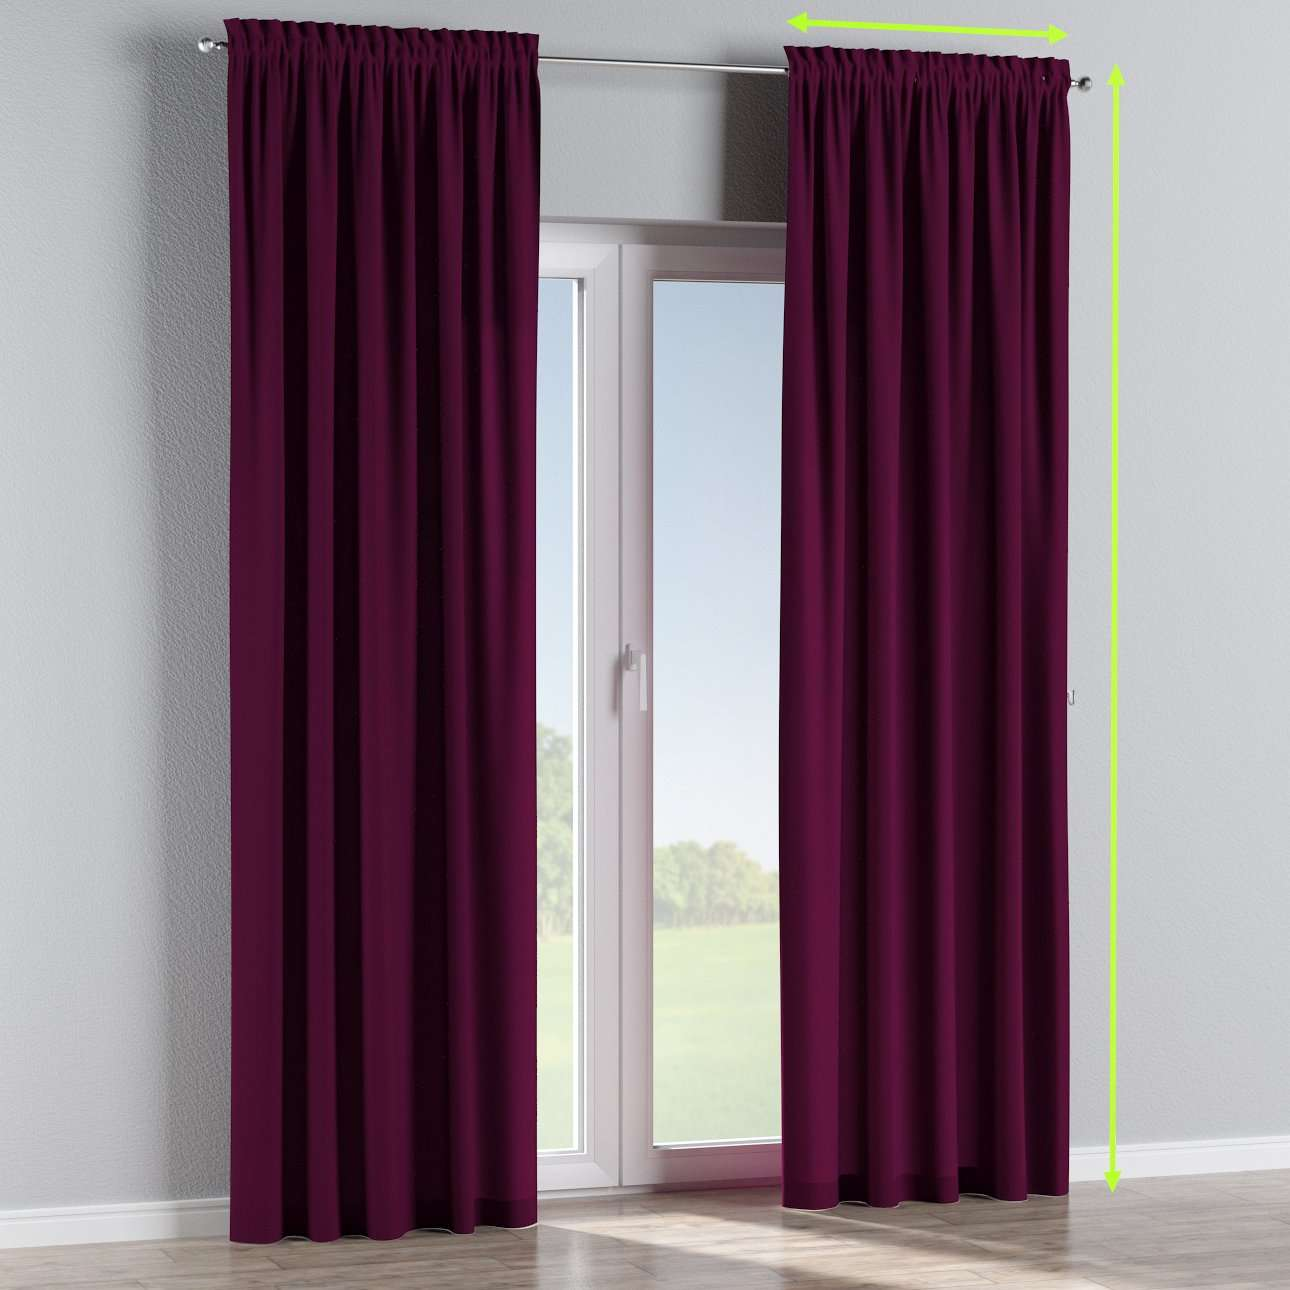 Slot and frill curtains in collection Chenille, fabric: 702-12